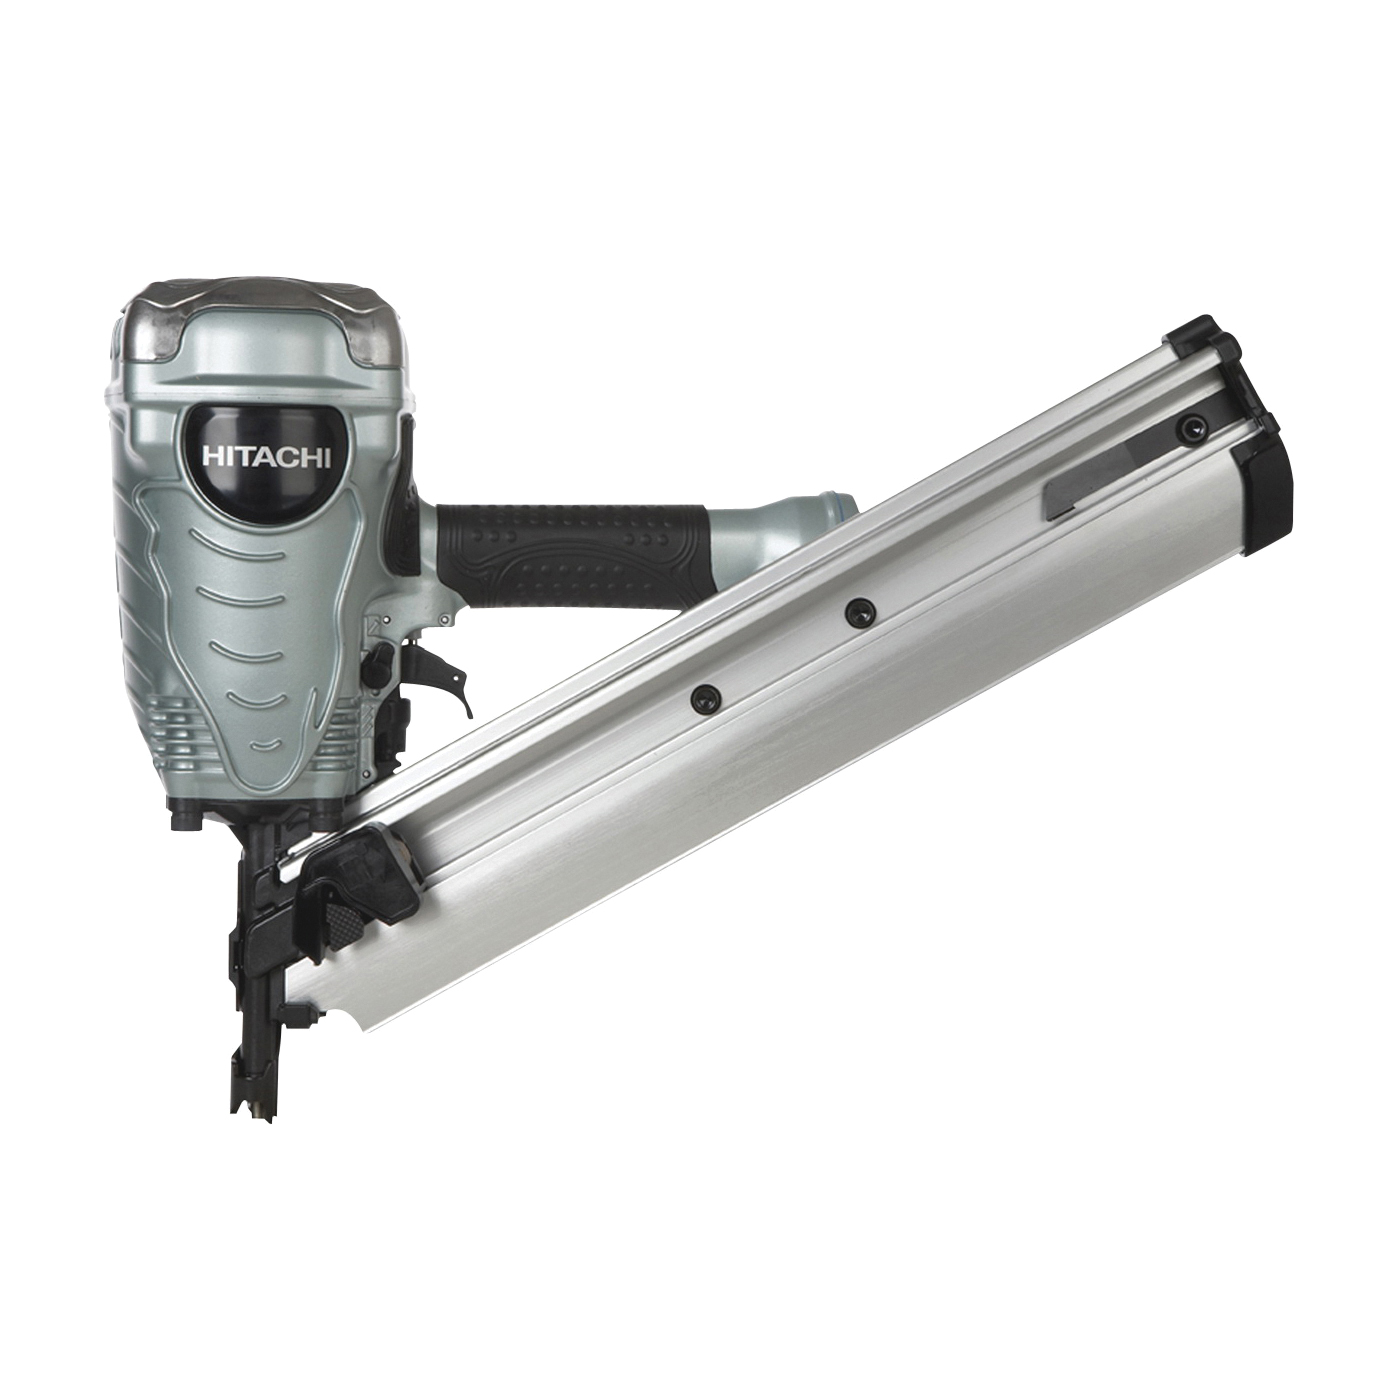 Picture of HITACHI NR90AD(S1) Framing Nailer, 50 to 74 Magazine, 35 deg Collation, Paper Tape Collation, 0.09 cu-ft/Cycle Air